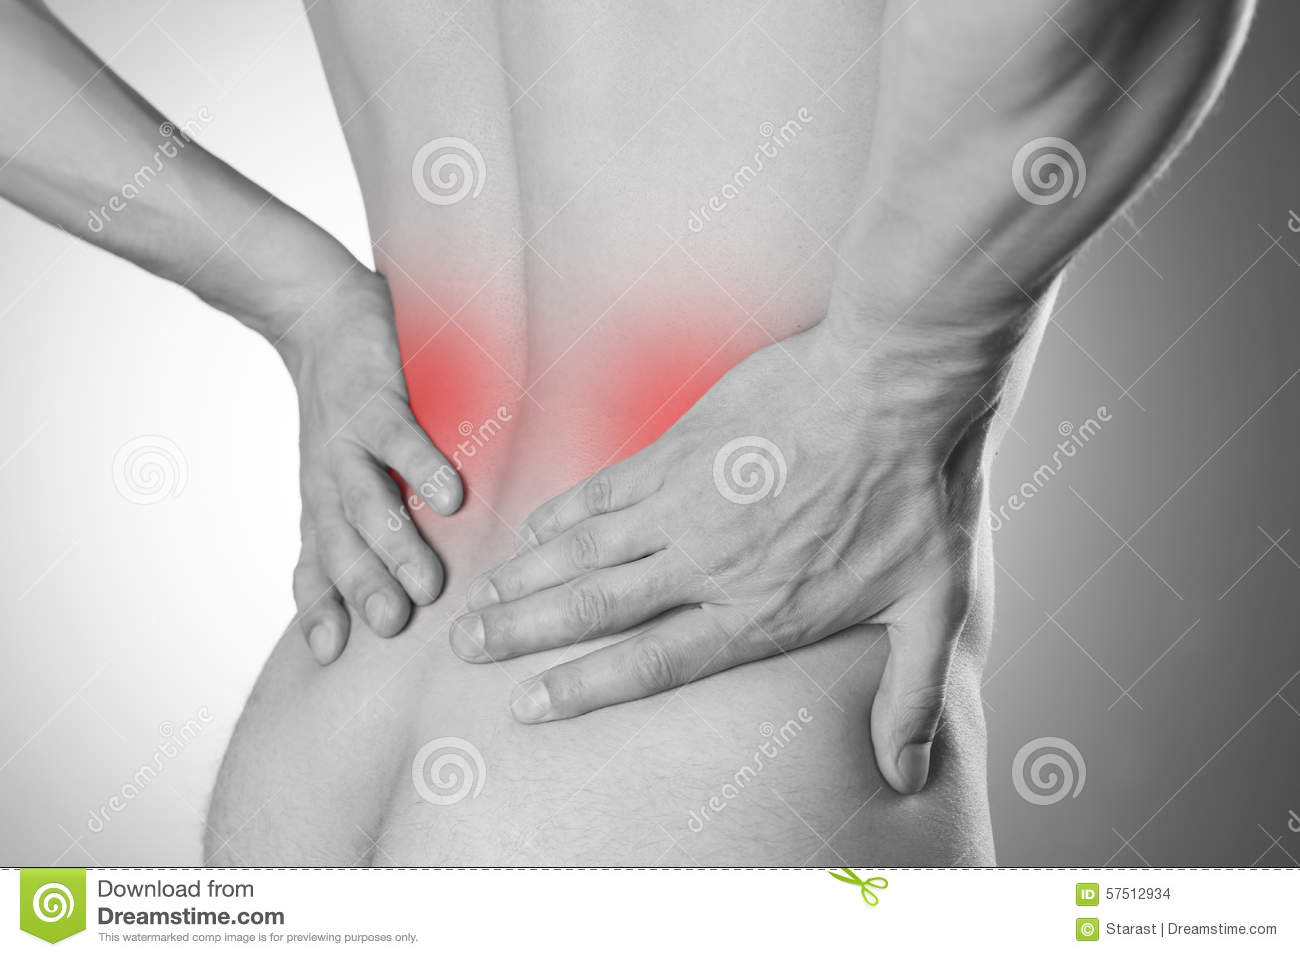 Stock Photo Kidney Pain Man Backache Pain Man S Body Gray Background Image57512934